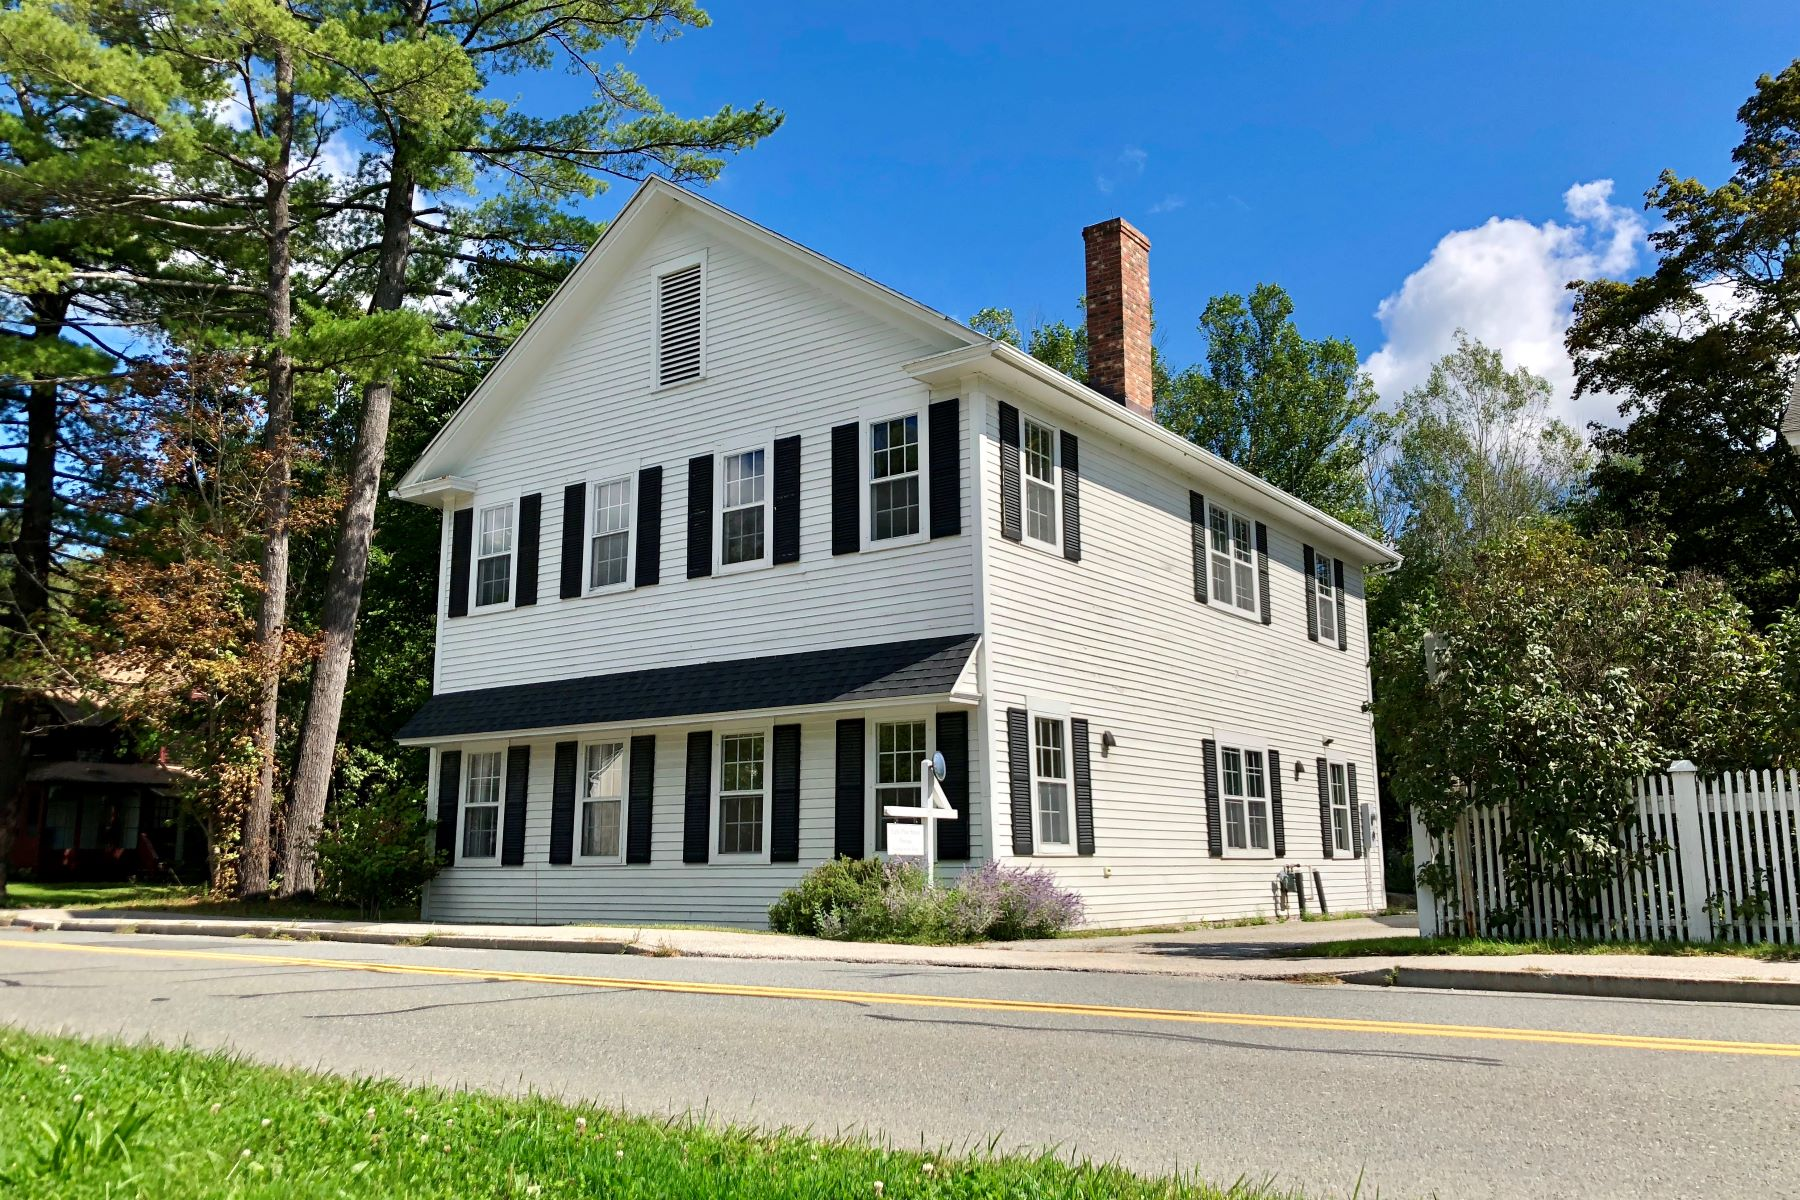 Single Family Homes for Sale at A short stroll from the Red Lion Inn in downtown Stockbridge w/ Large Private Pa 8 Pine St Stockbridge, Massachusetts 01262 United States